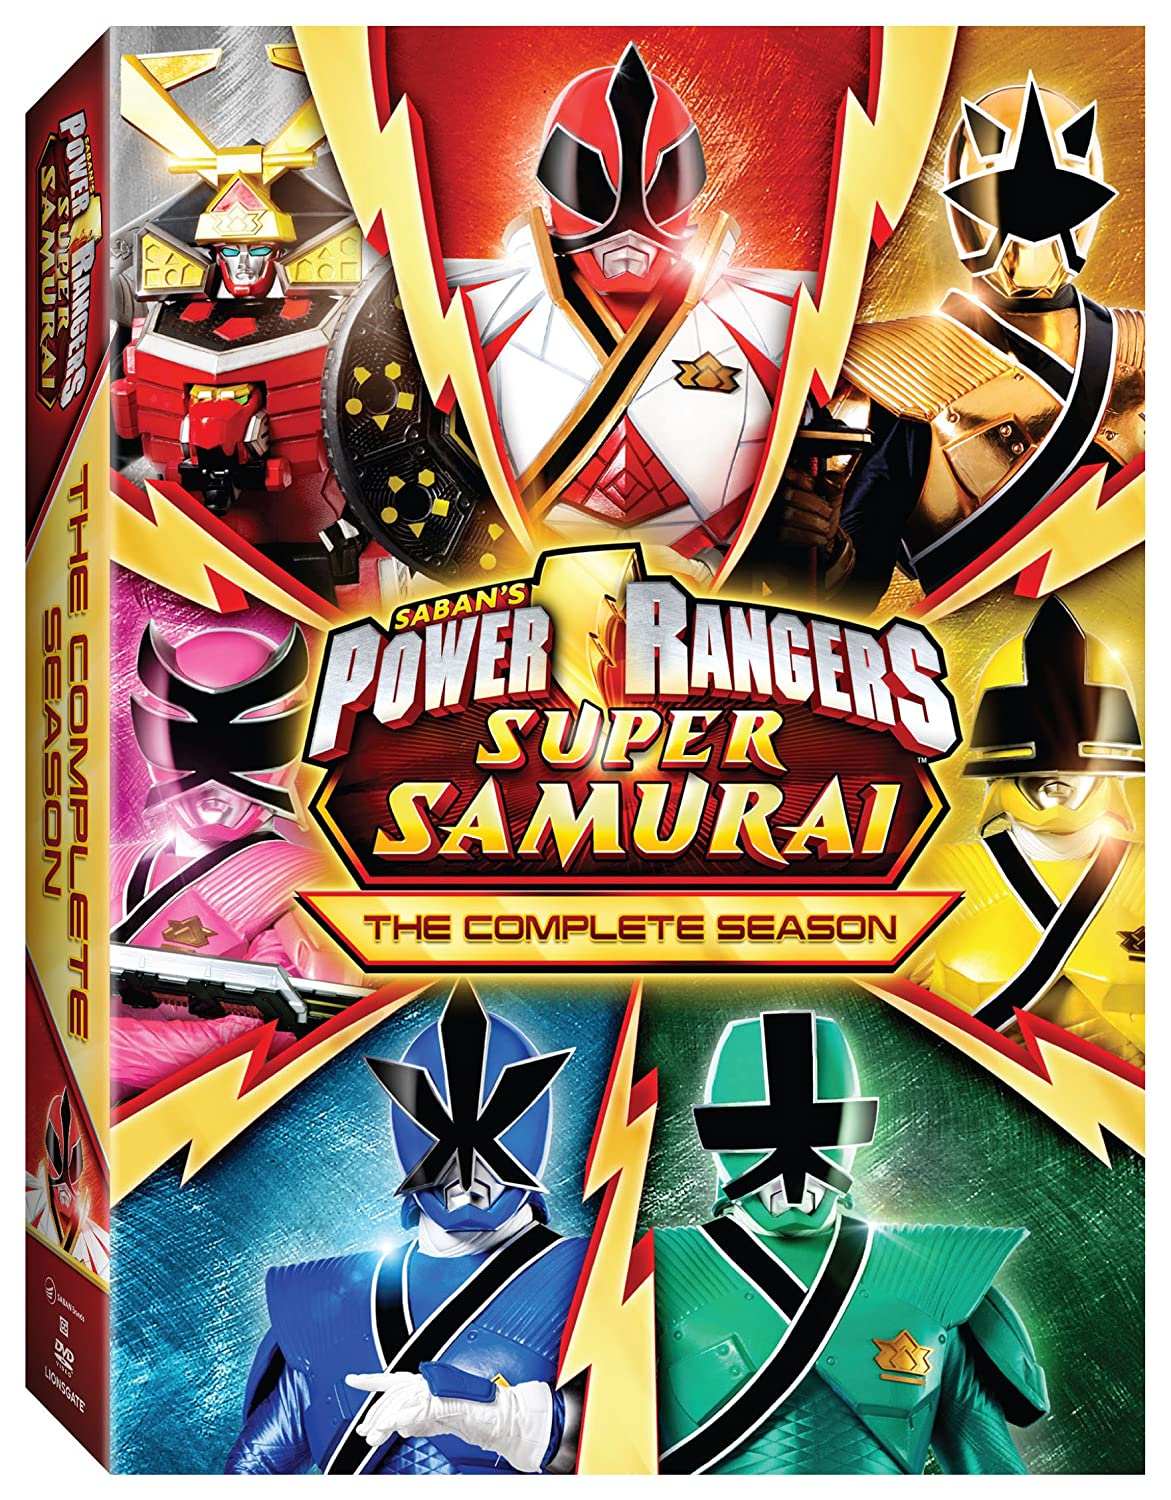 Amazon.com: Power Rangers Super Samurai: The Complete Season ...